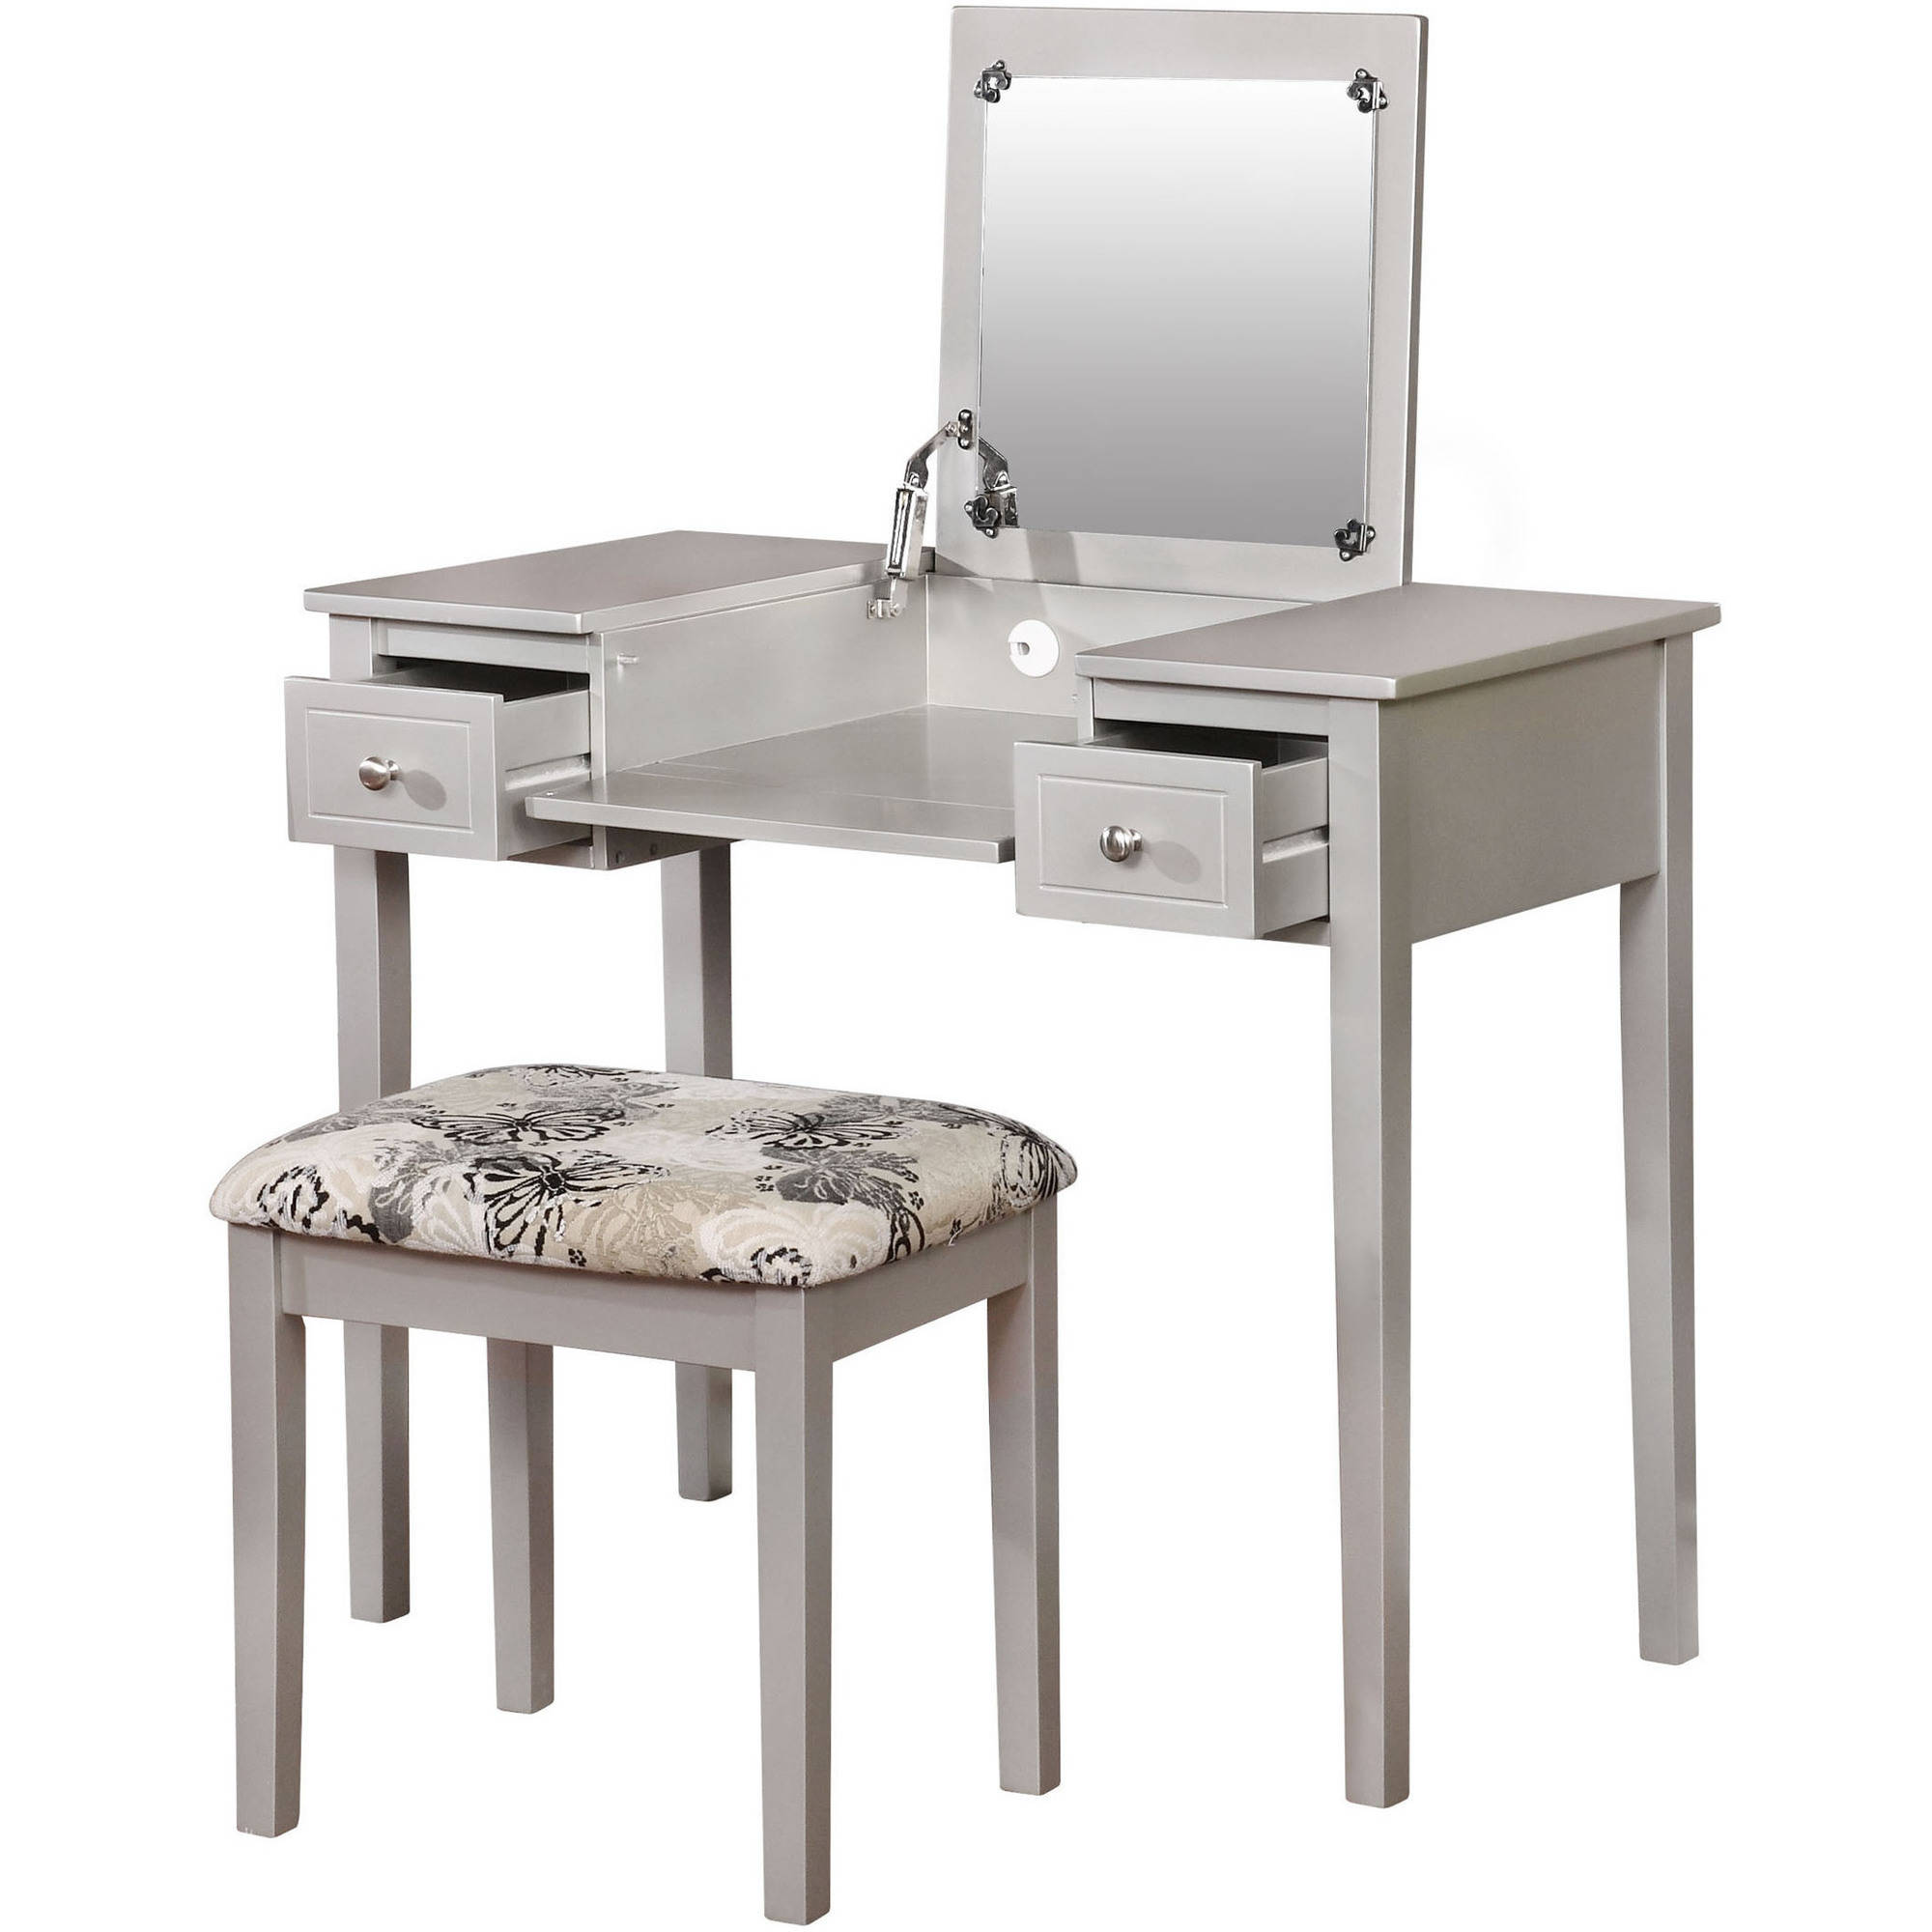 Product Image Linon Home Butterfly Vanity Set With Flip Top Mirror And  Stool, Multiple Colors